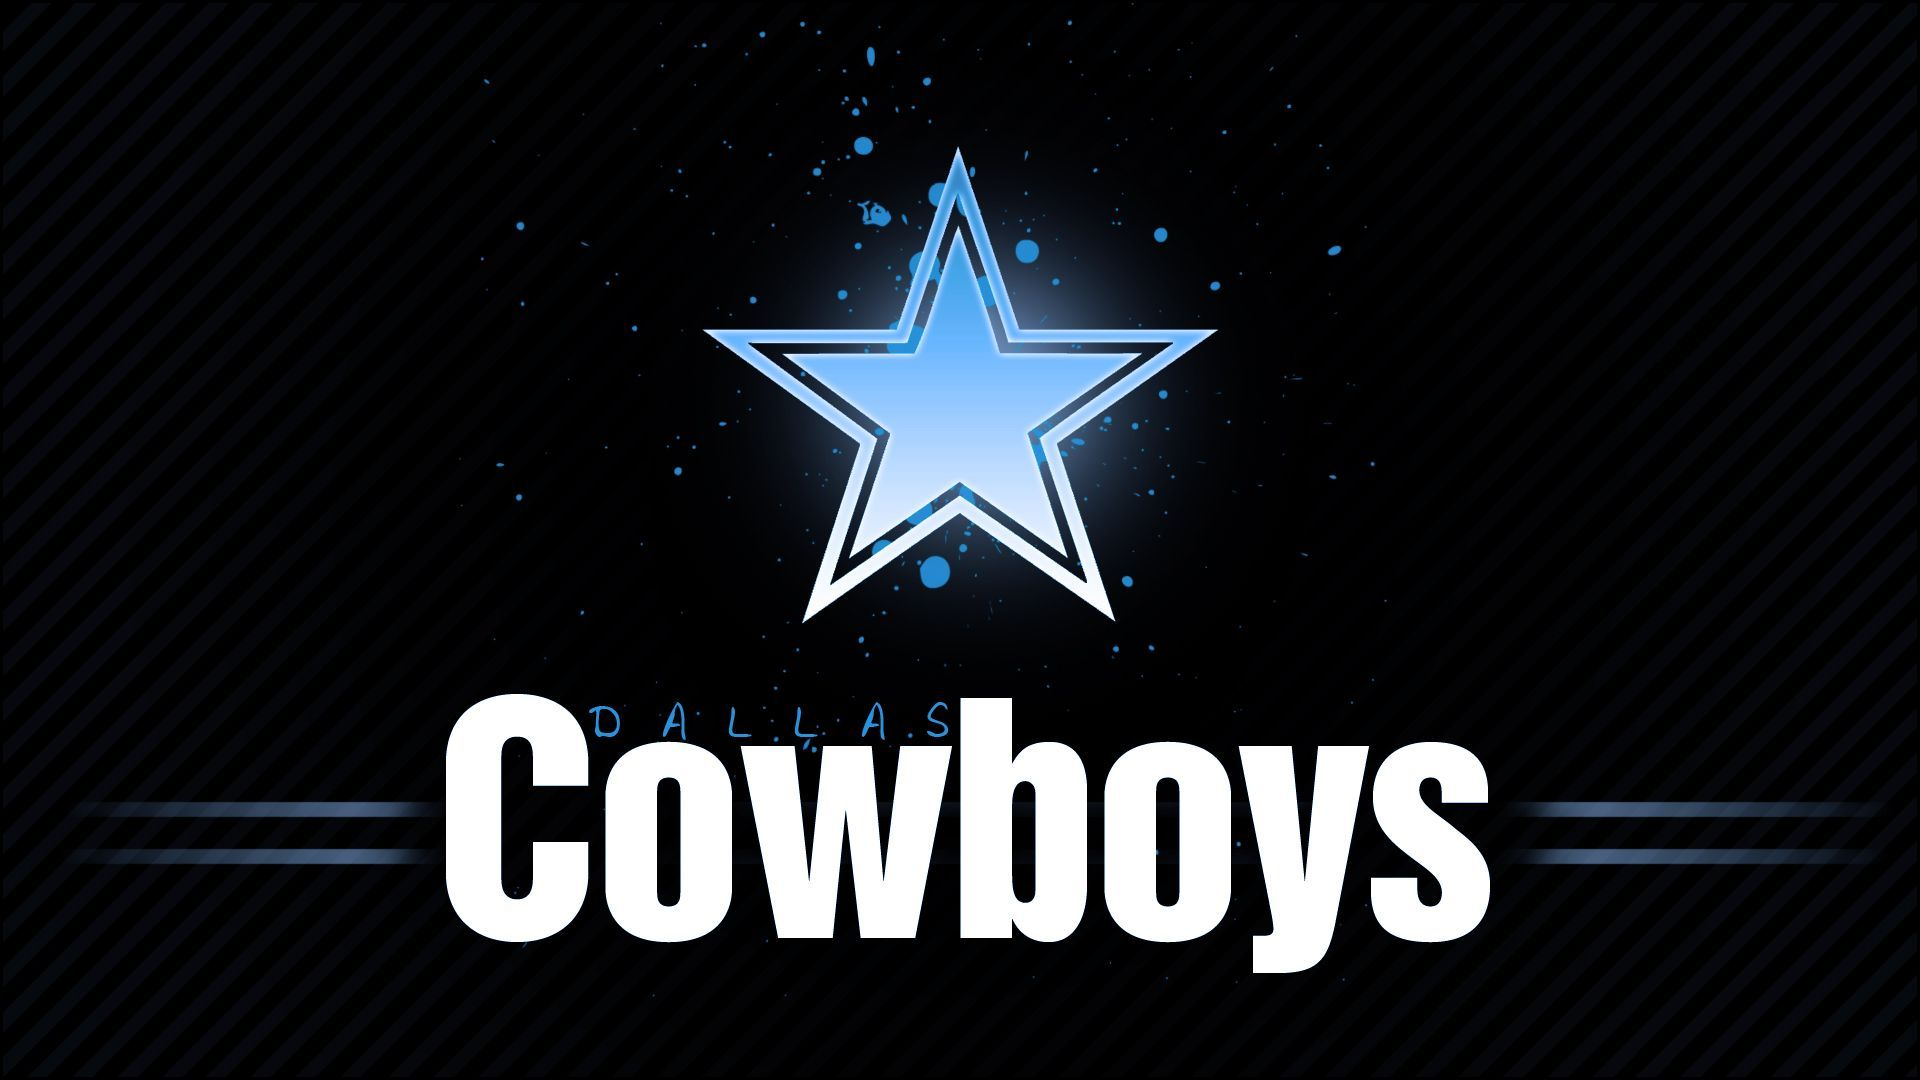 Dallas-Cowboys-HD-Backgrounds-wallpaper-wp3604544